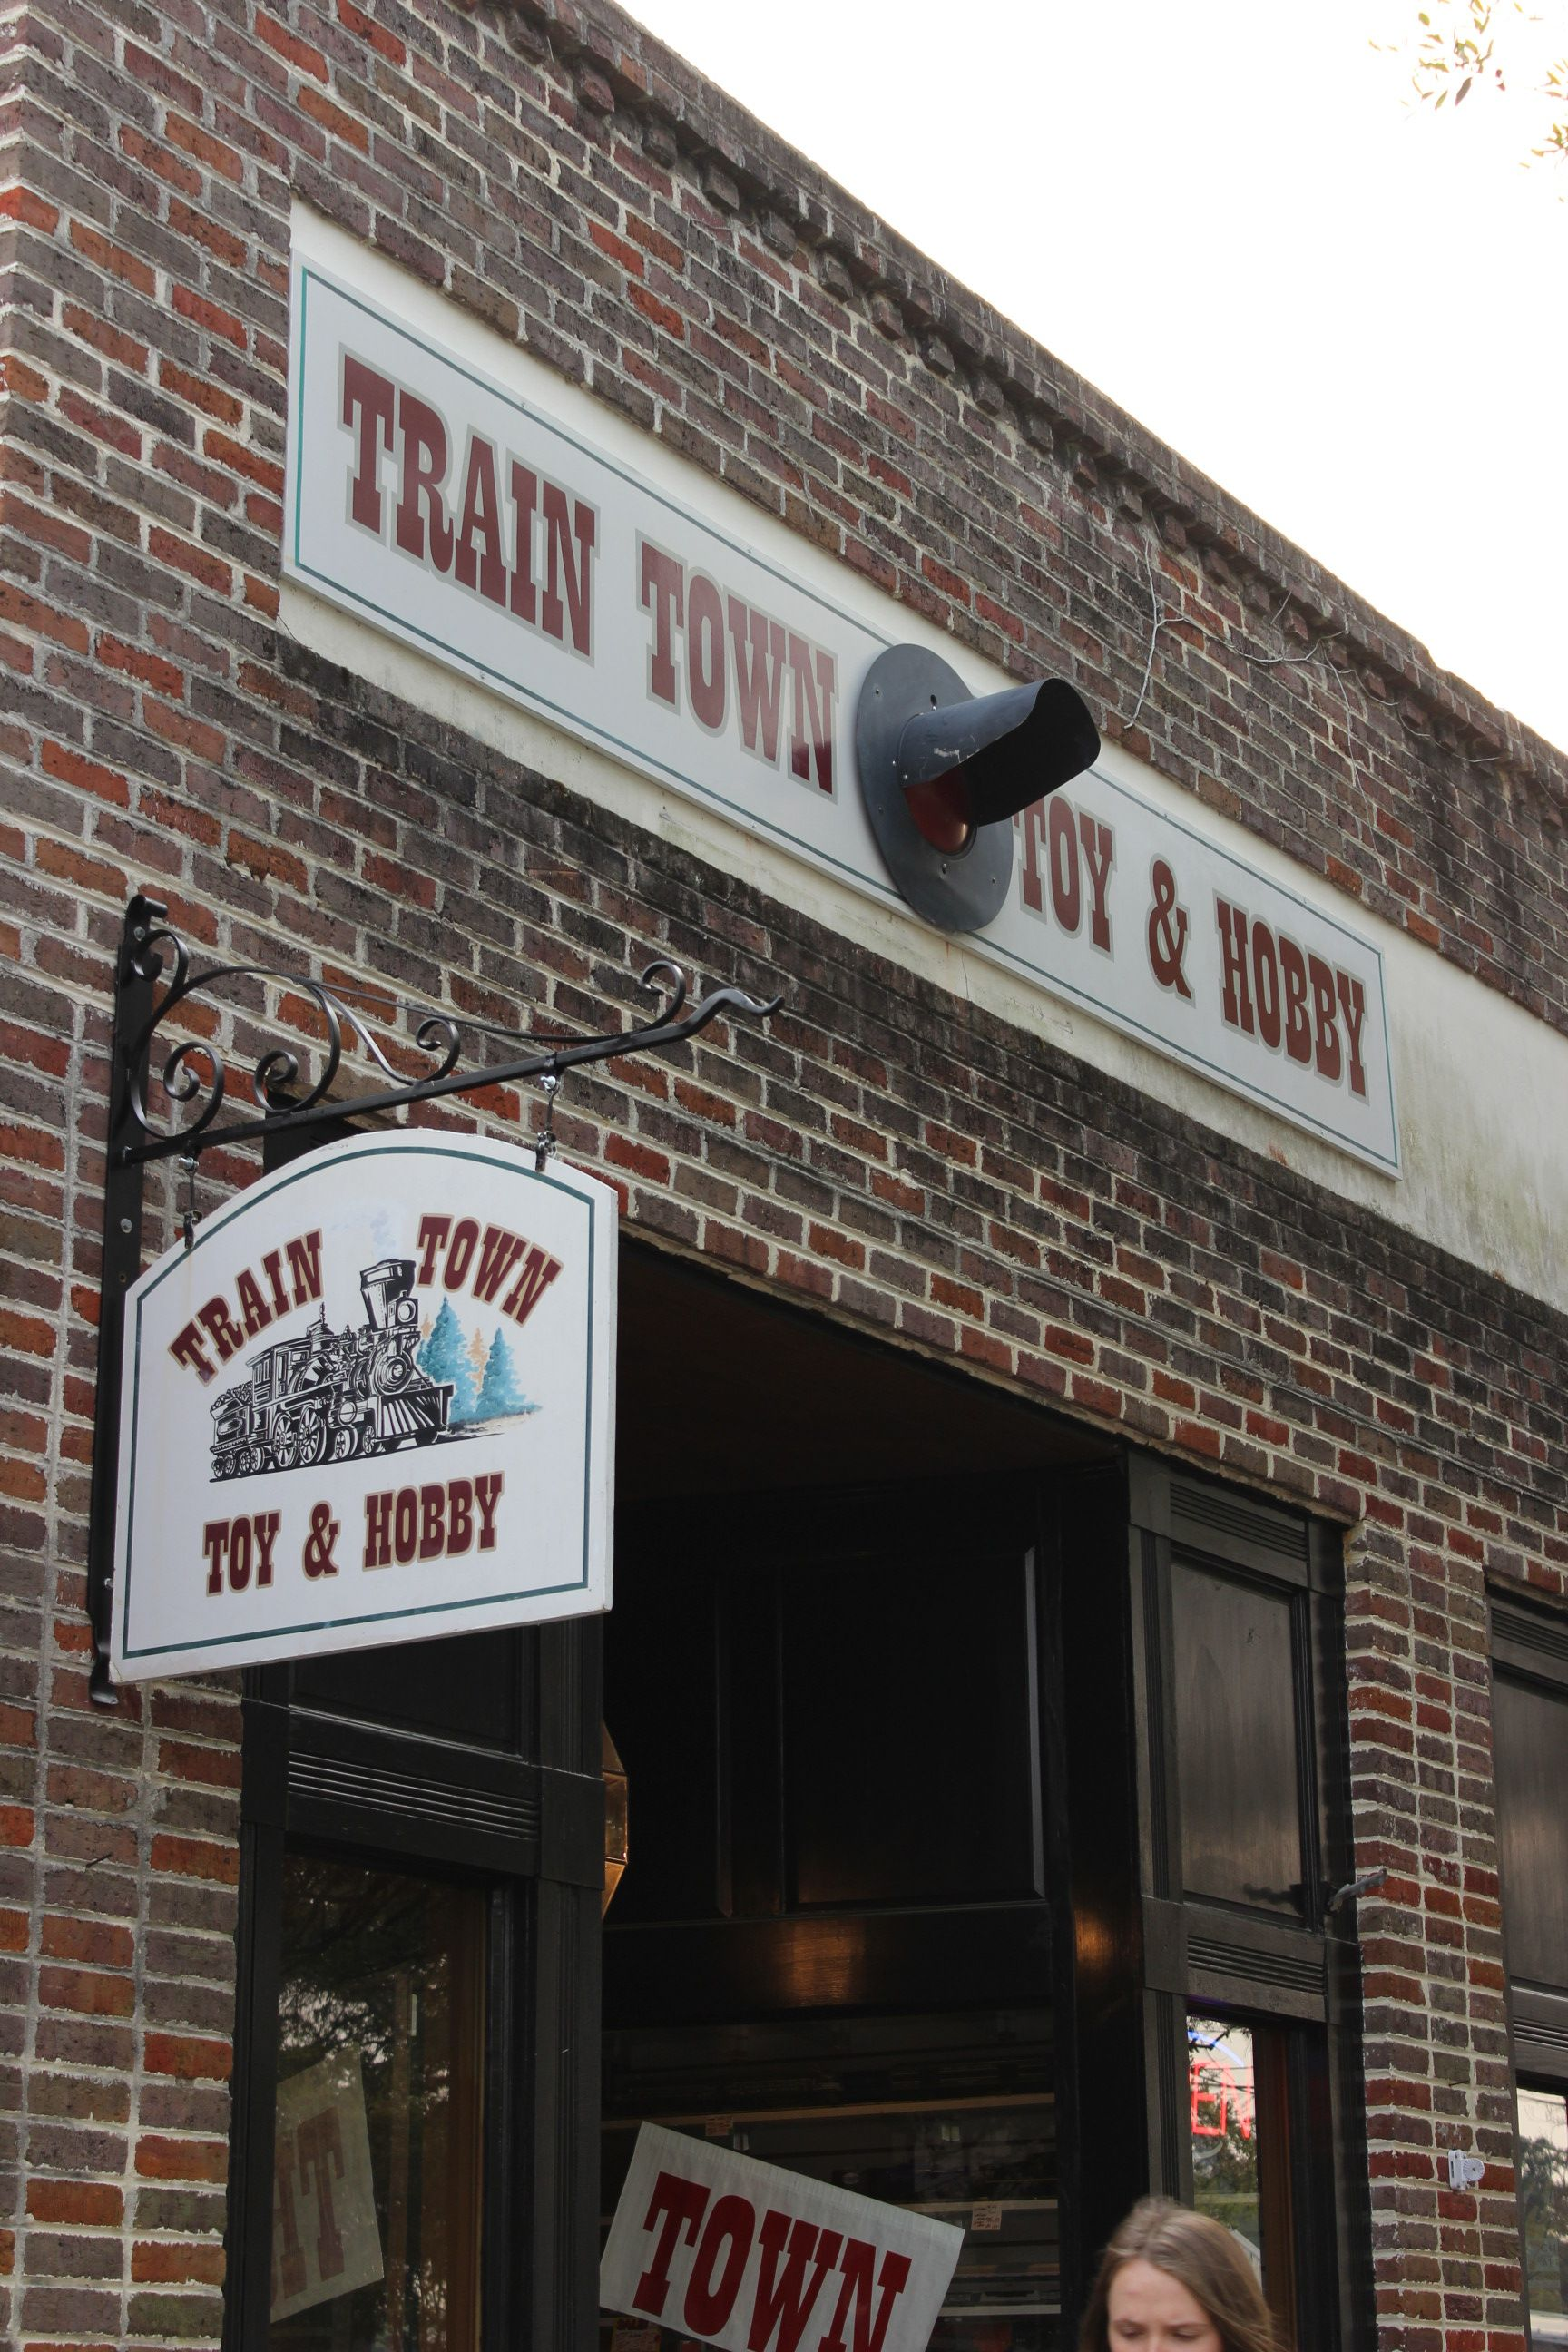 Train Town Toy & Hobby in Summerville, SC   I ❤ South